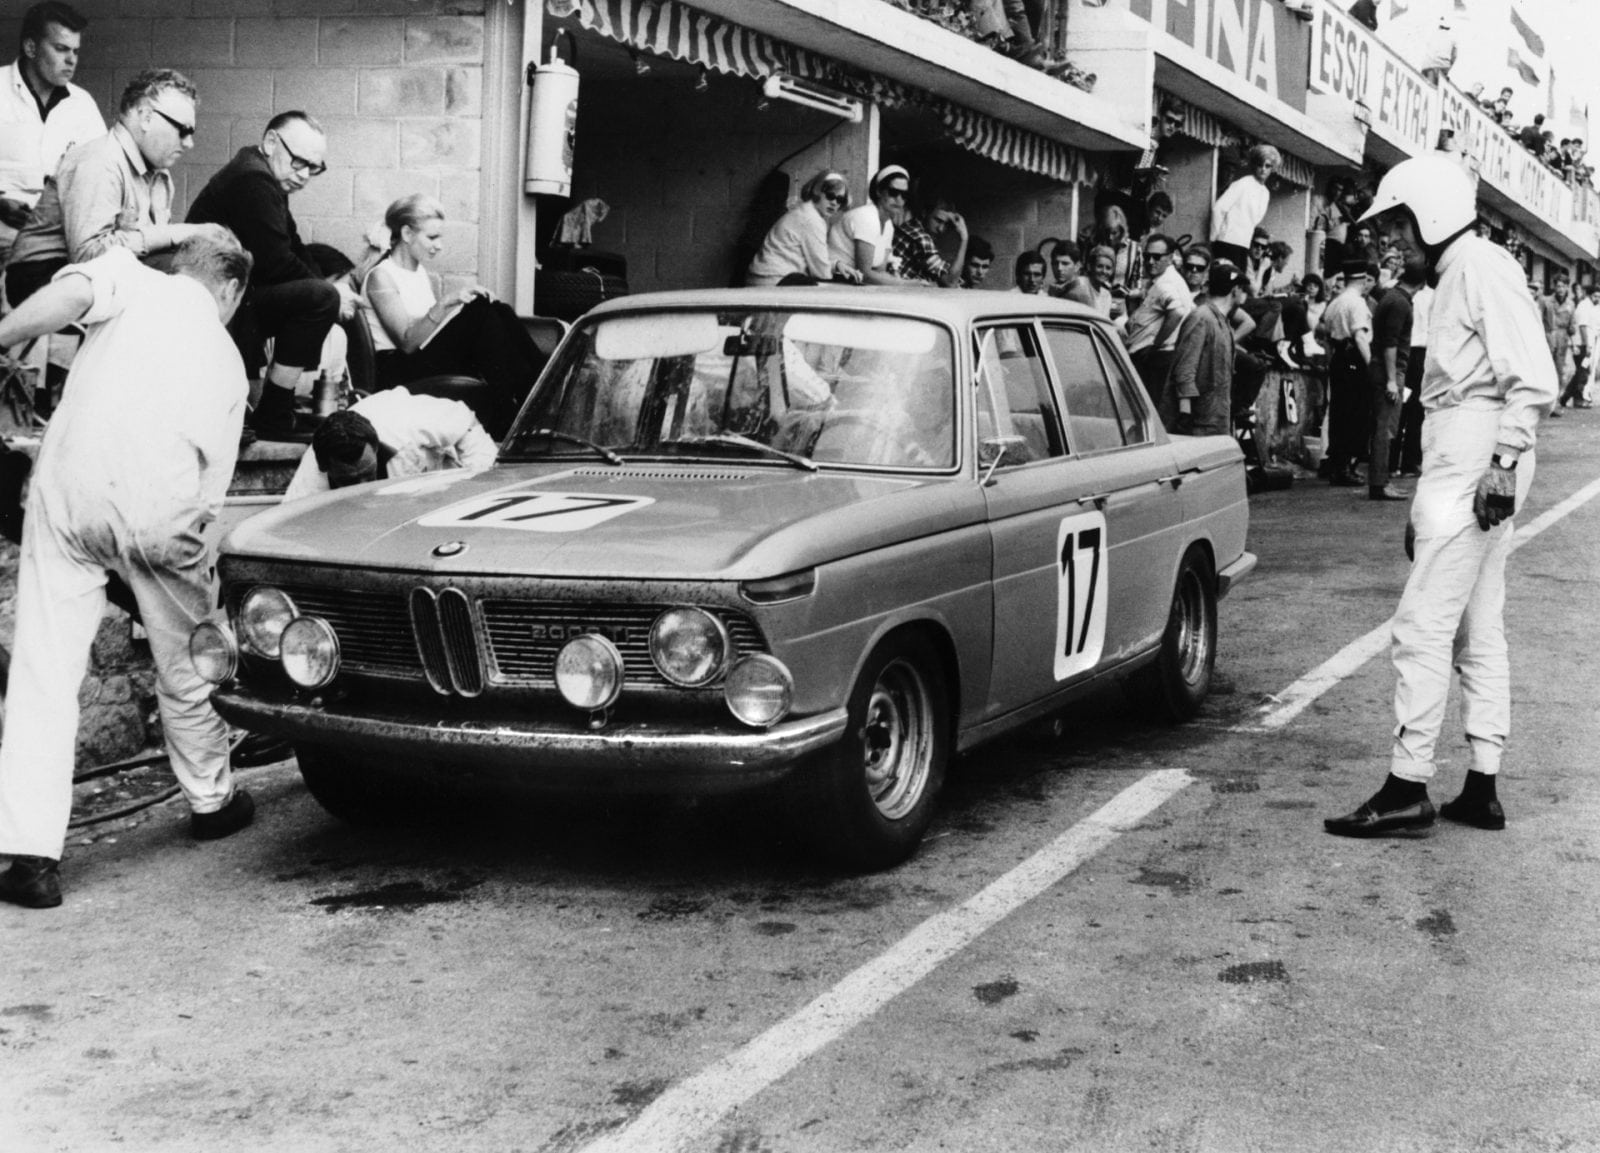 50 Years of BMW New Class, BMW 1800 at 24-hours race at Spa Francorchamps 1966 - pit stop (03/2011)